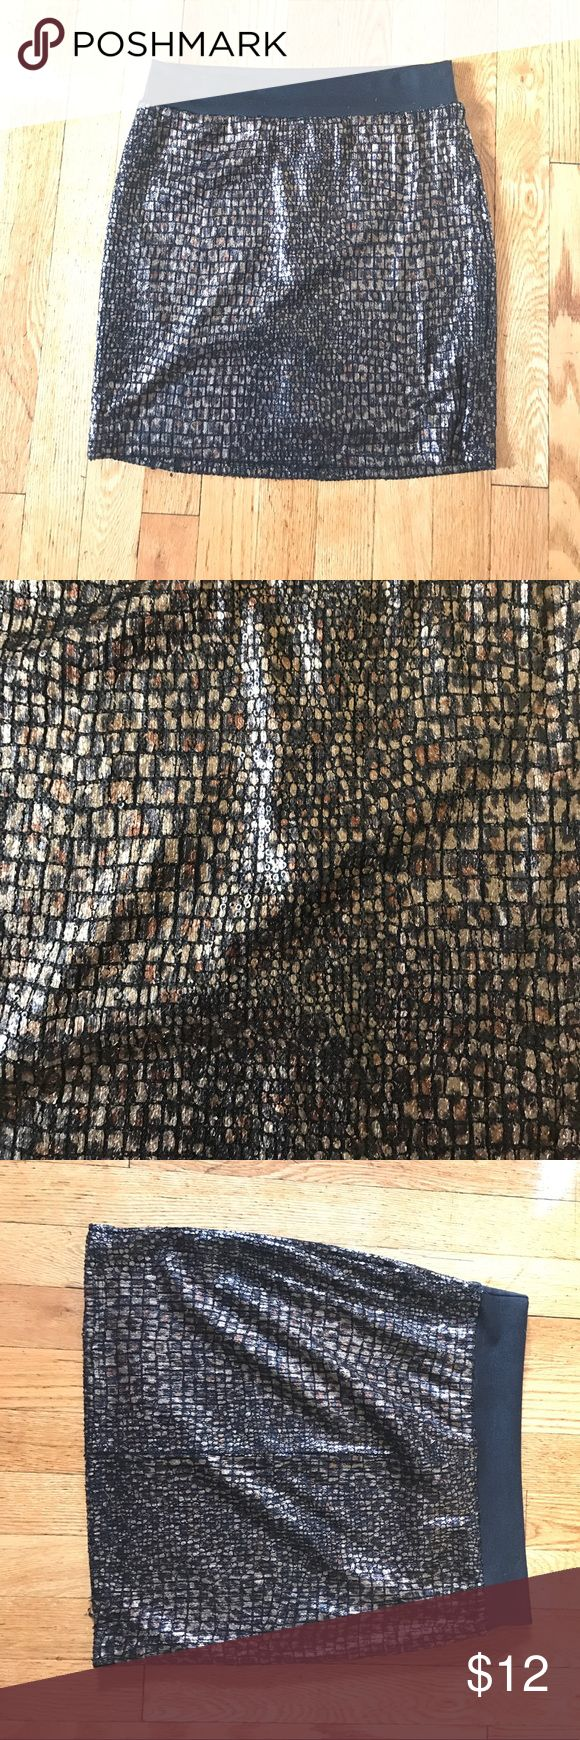 Honey Punch leopard sequined skirt Only worn once! Skirt is fun for a night out! Skirt has some stretch and band at the top. 100% polyester, approx 16 inches long. Honey Punch Skirts Mini